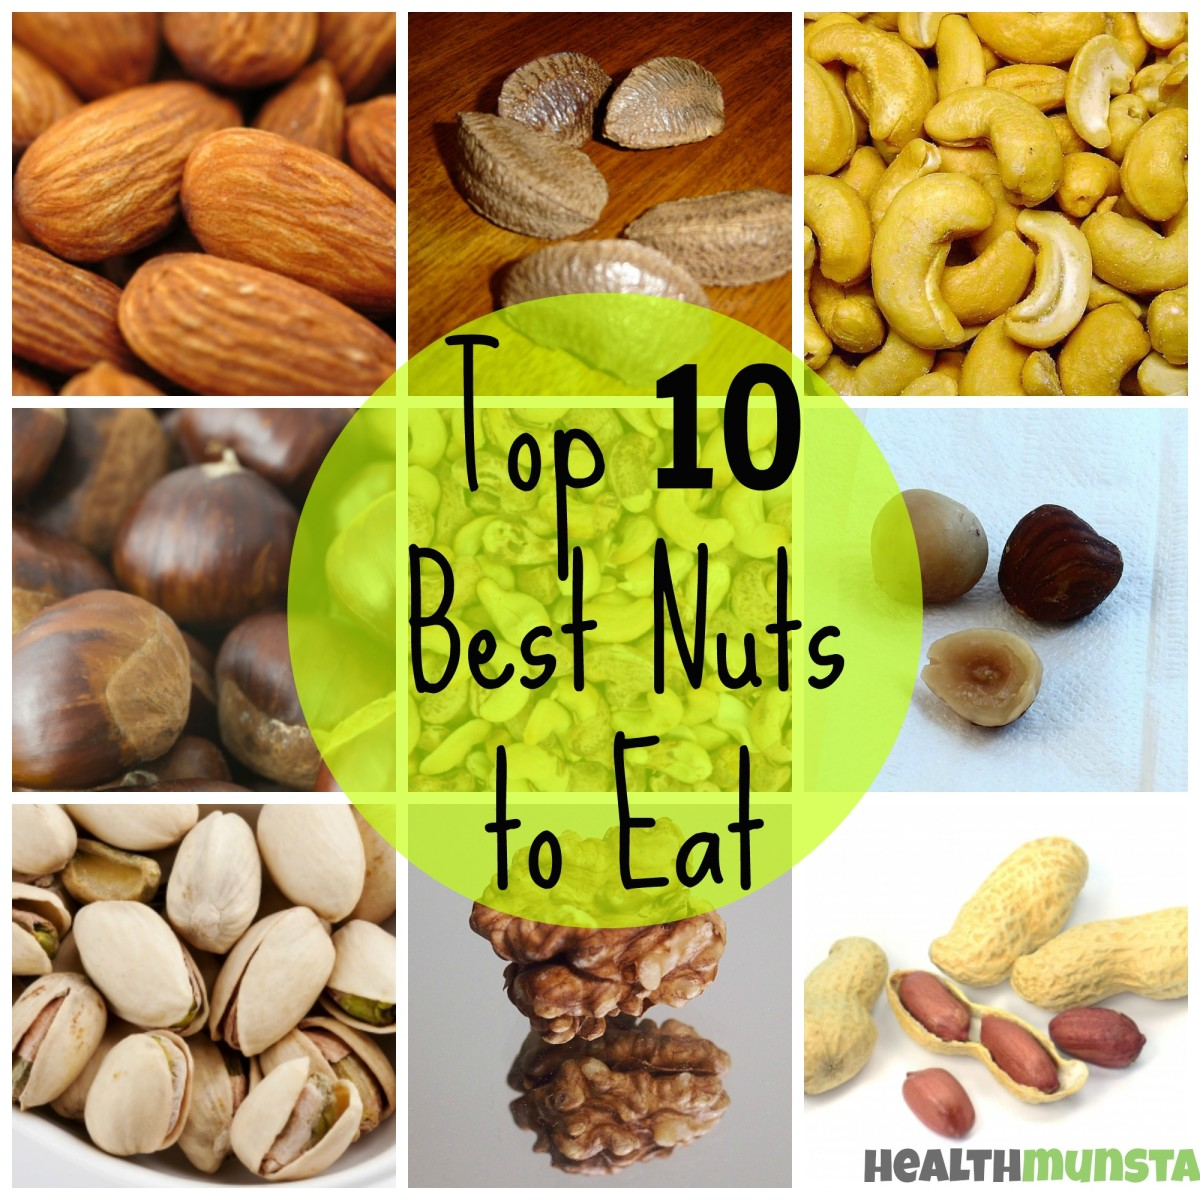 Top 10 Best Nuts for Good Health